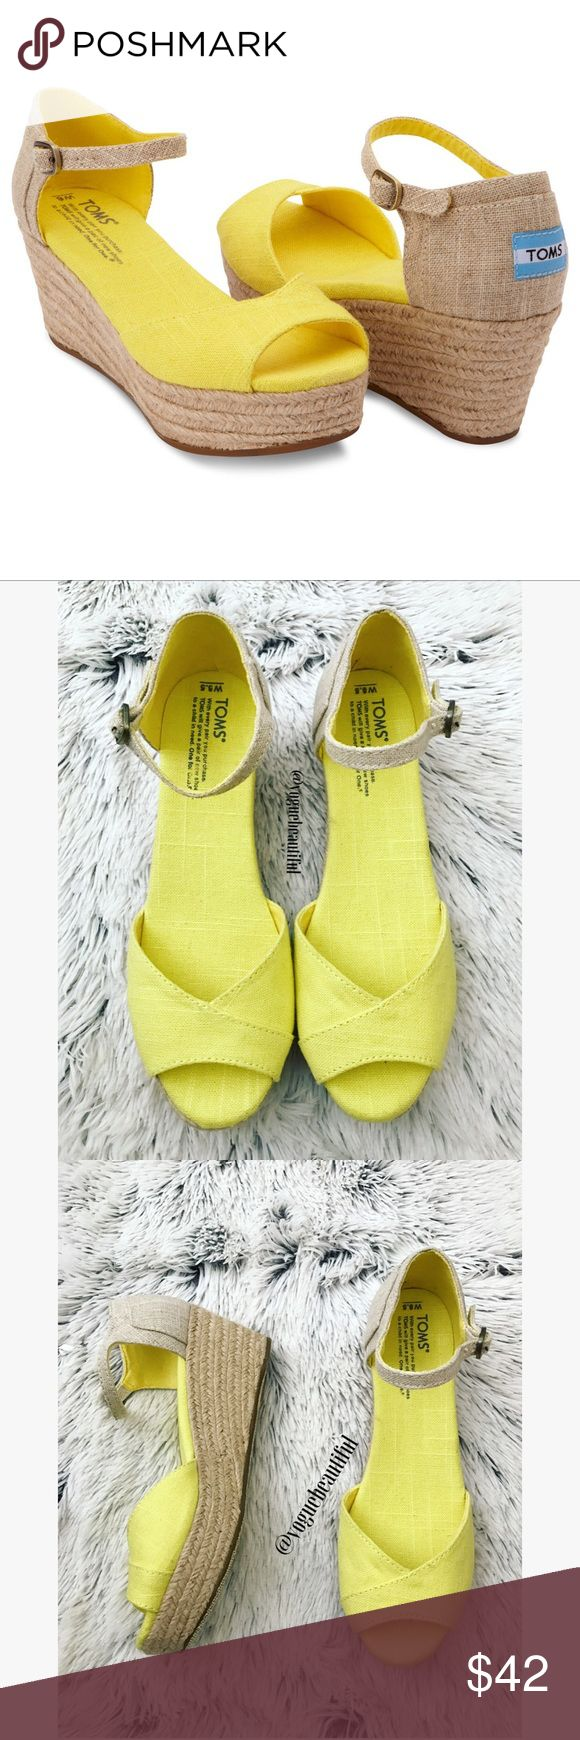 TOMS Yellow Wedges Yellow TOMS wedges with ankle strap • very good condition with very little to no wear • size 8.5 W • wedge height is 3 inches • color may vary slightly from photos • 🚨NO TRADES🚨 TOMS Shoes Wedges